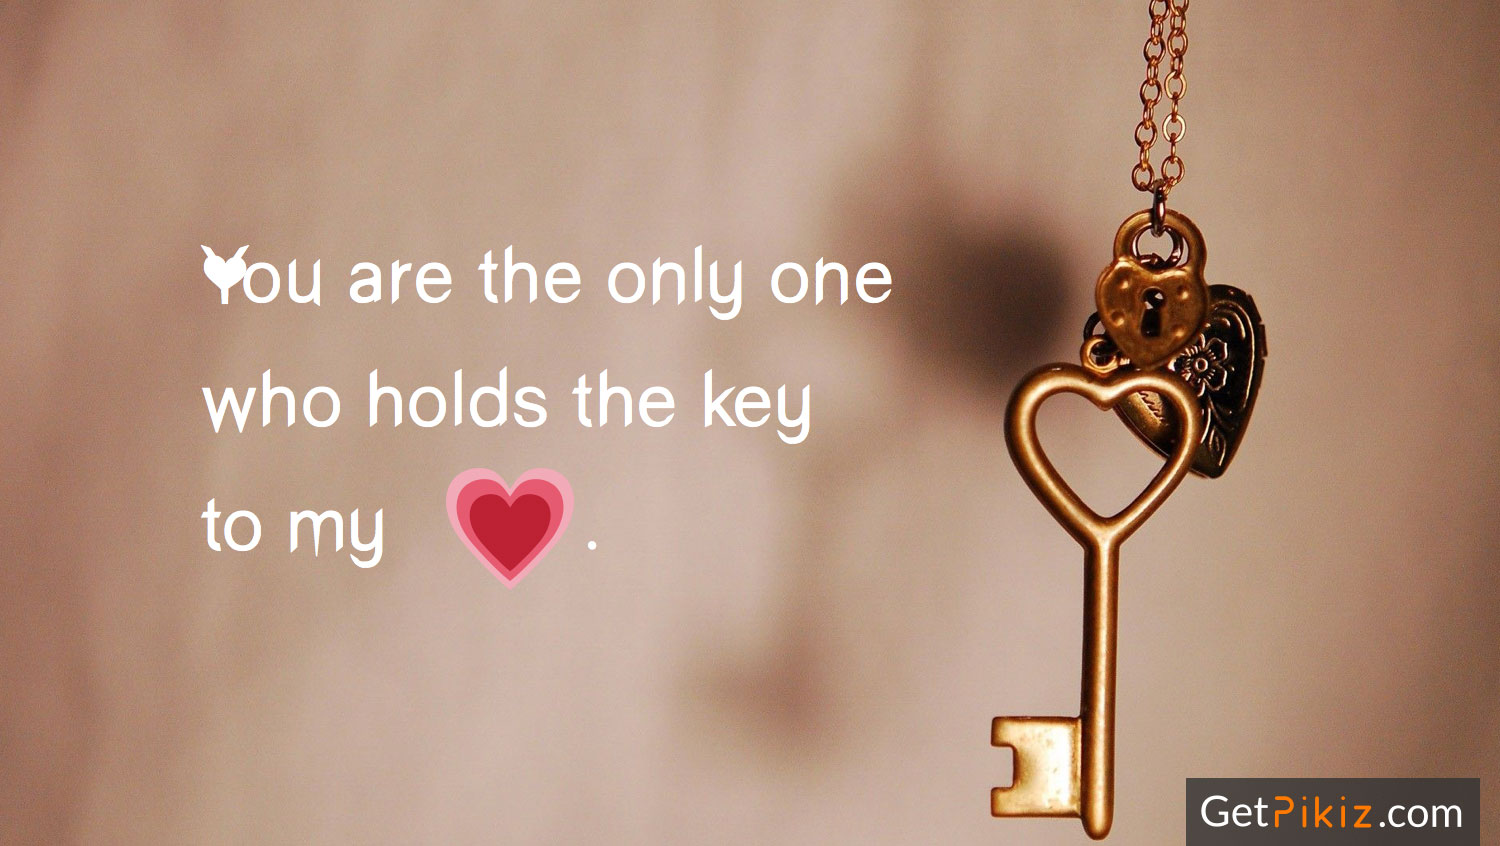 You are the only one who holds the key to my heart.